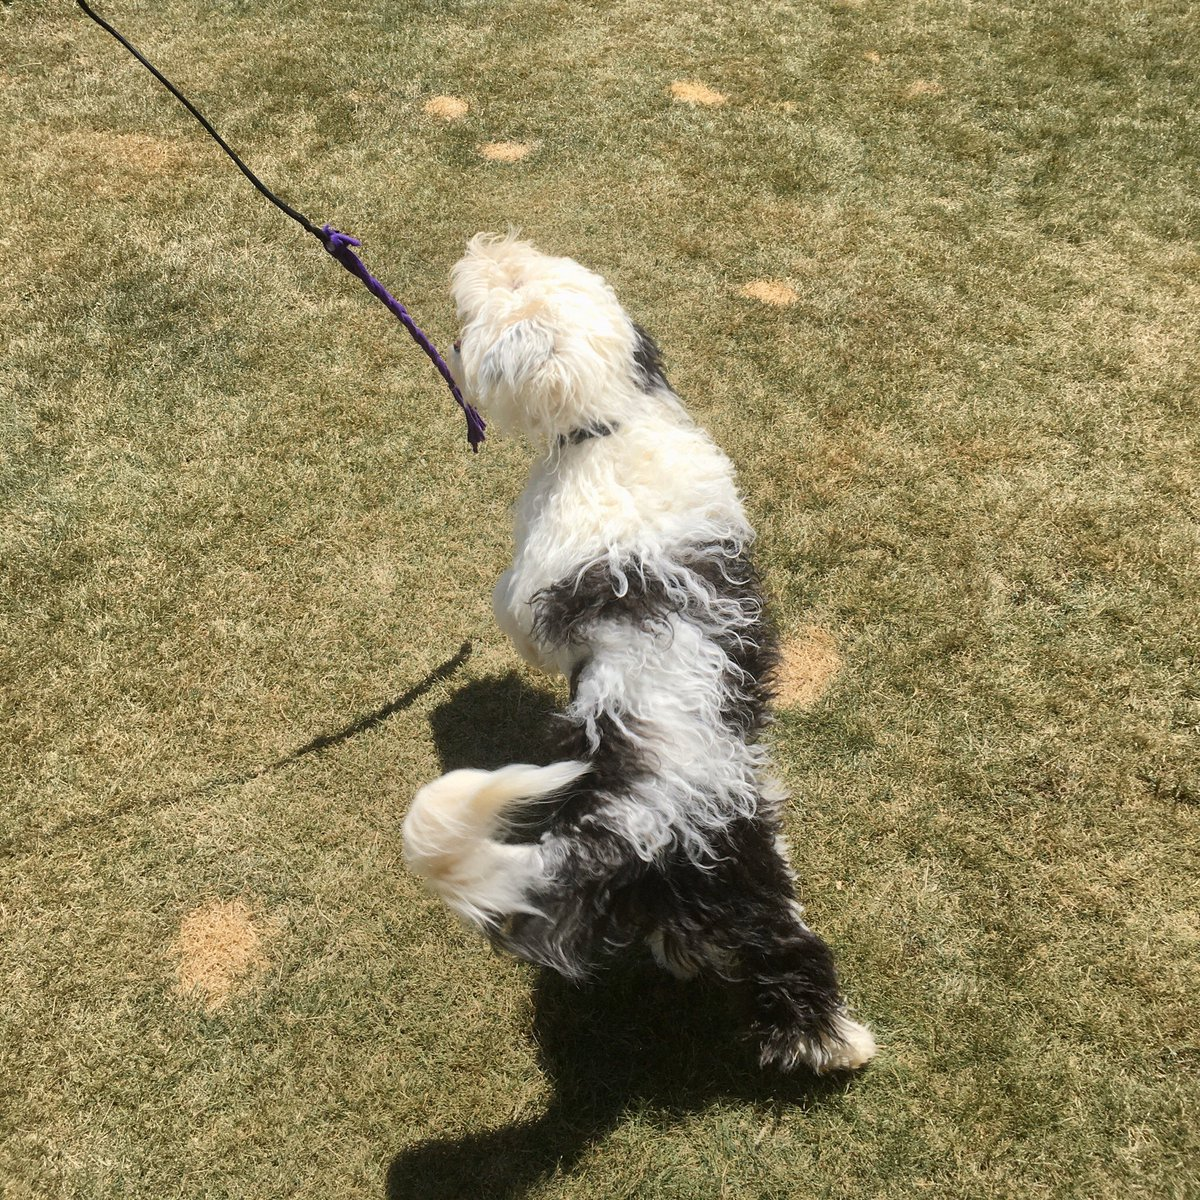 Trying to catch the elusive fluffy dogfish #sheepadoodle #sheepadoodlepuppy #dogfish #fishing #gonefishing #dogtoy #fluffydog #floofydog #sheepdog #sheepdogpuppy #dogchase #doggames #dogjump #dogjumping #louisava #doggydaycare #dogsitter #dogsofvirginia #poindexterparkpetspic.twitter.com/xqICGomvh4